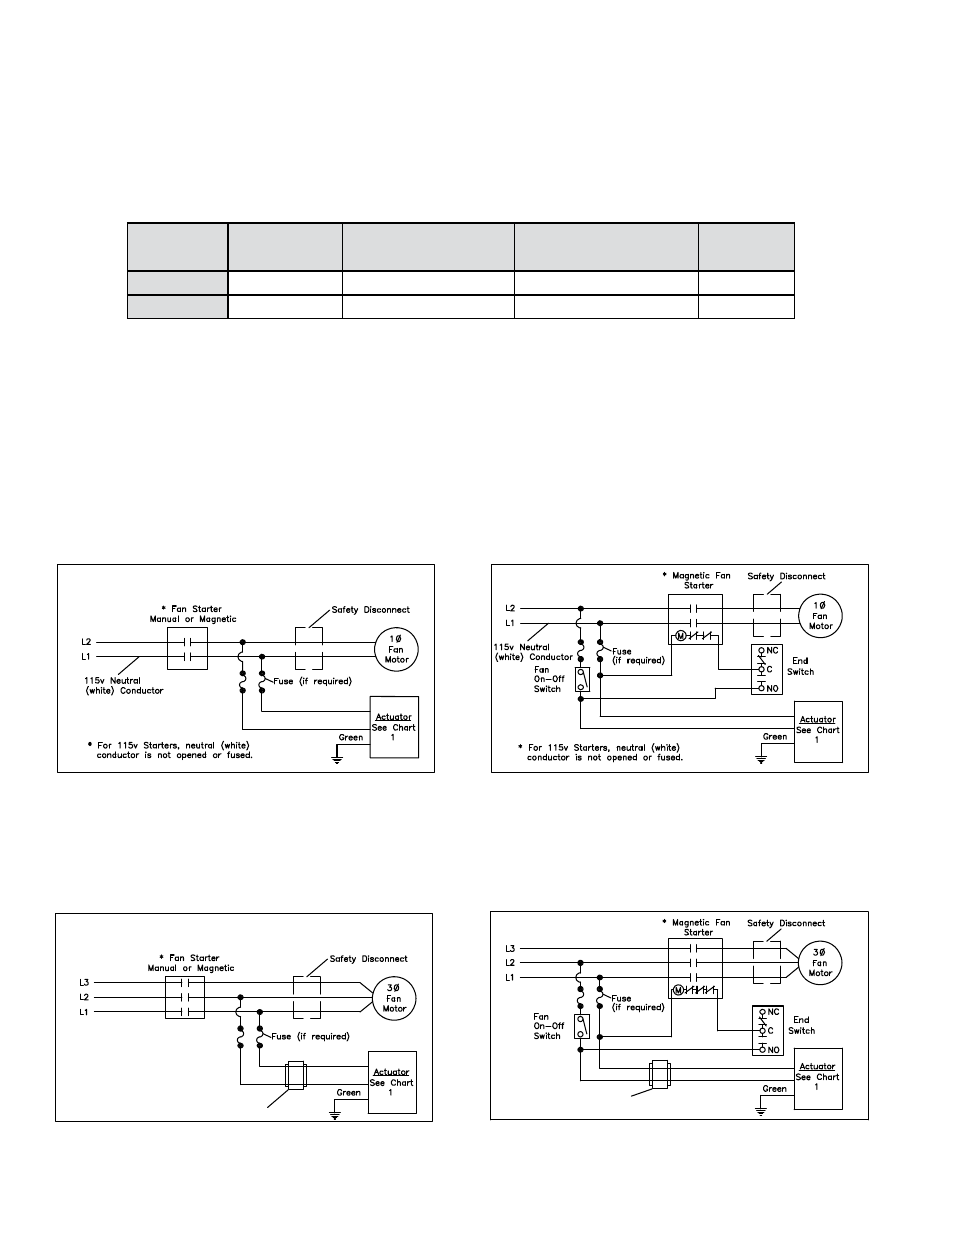 Motor pack quany, Actuator specifications, Typical wiring ... on sincgars radio configurations diagrams, friendship bracelet diagrams, series and parallel circuits diagrams, lighting diagrams, engine diagrams, troubleshooting diagrams, battery diagrams, internet of things diagrams, transformer diagrams, switch diagrams, electrical diagrams, led circuit diagrams, snatch block diagrams, gmc fuse box diagrams, electronic circuit diagrams, smart car diagrams, motor diagrams, pinout diagrams, honda motorcycle repair diagrams, hvac diagrams,